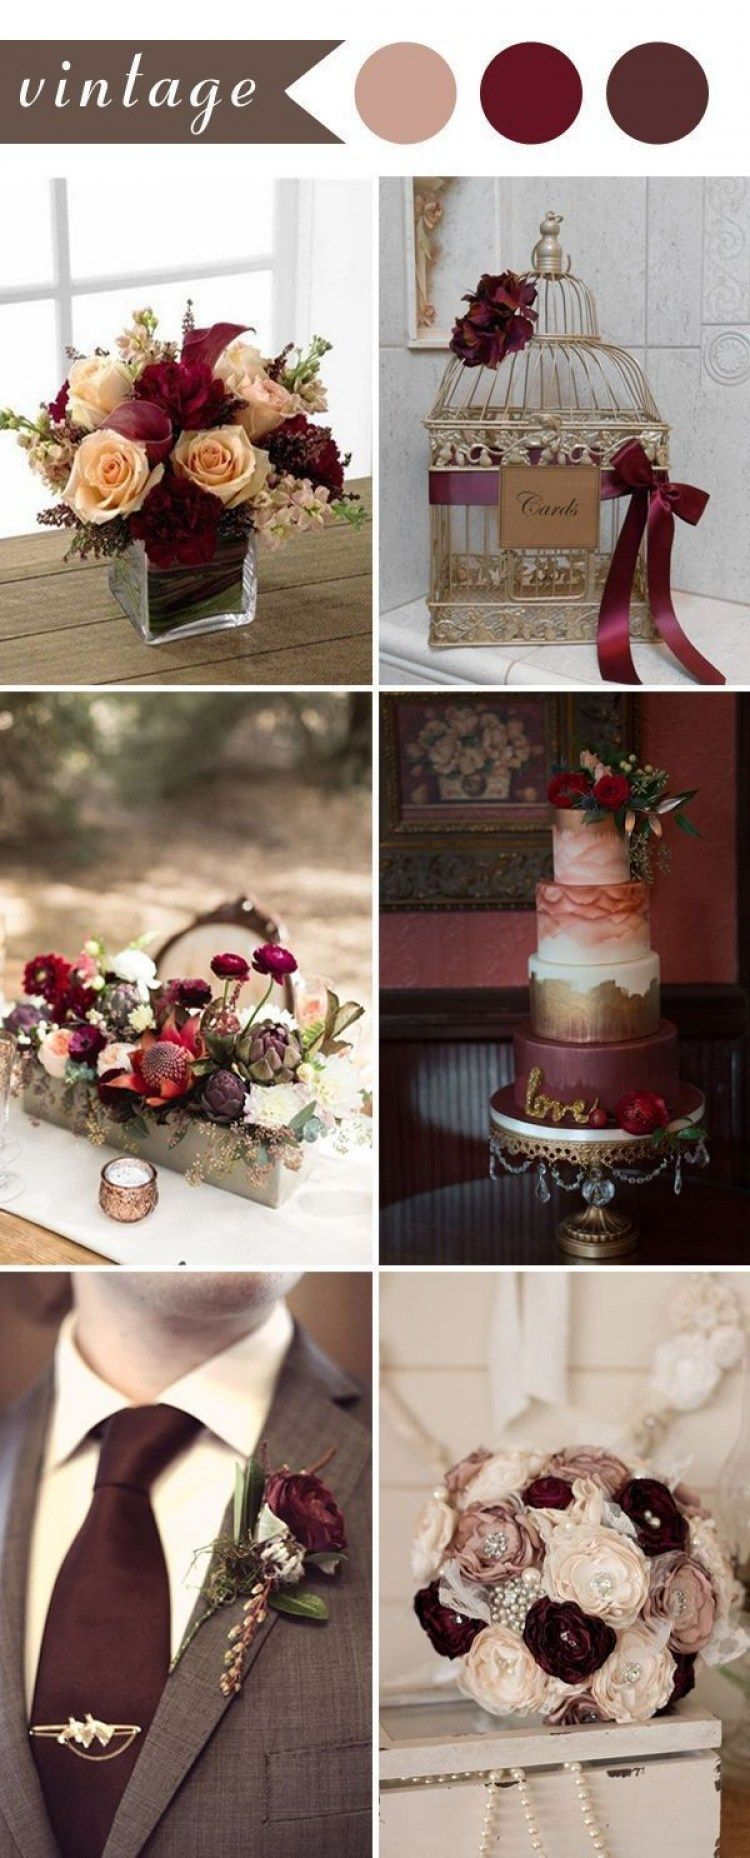 31 Stunning Maroon And Silver Wedding Decorations